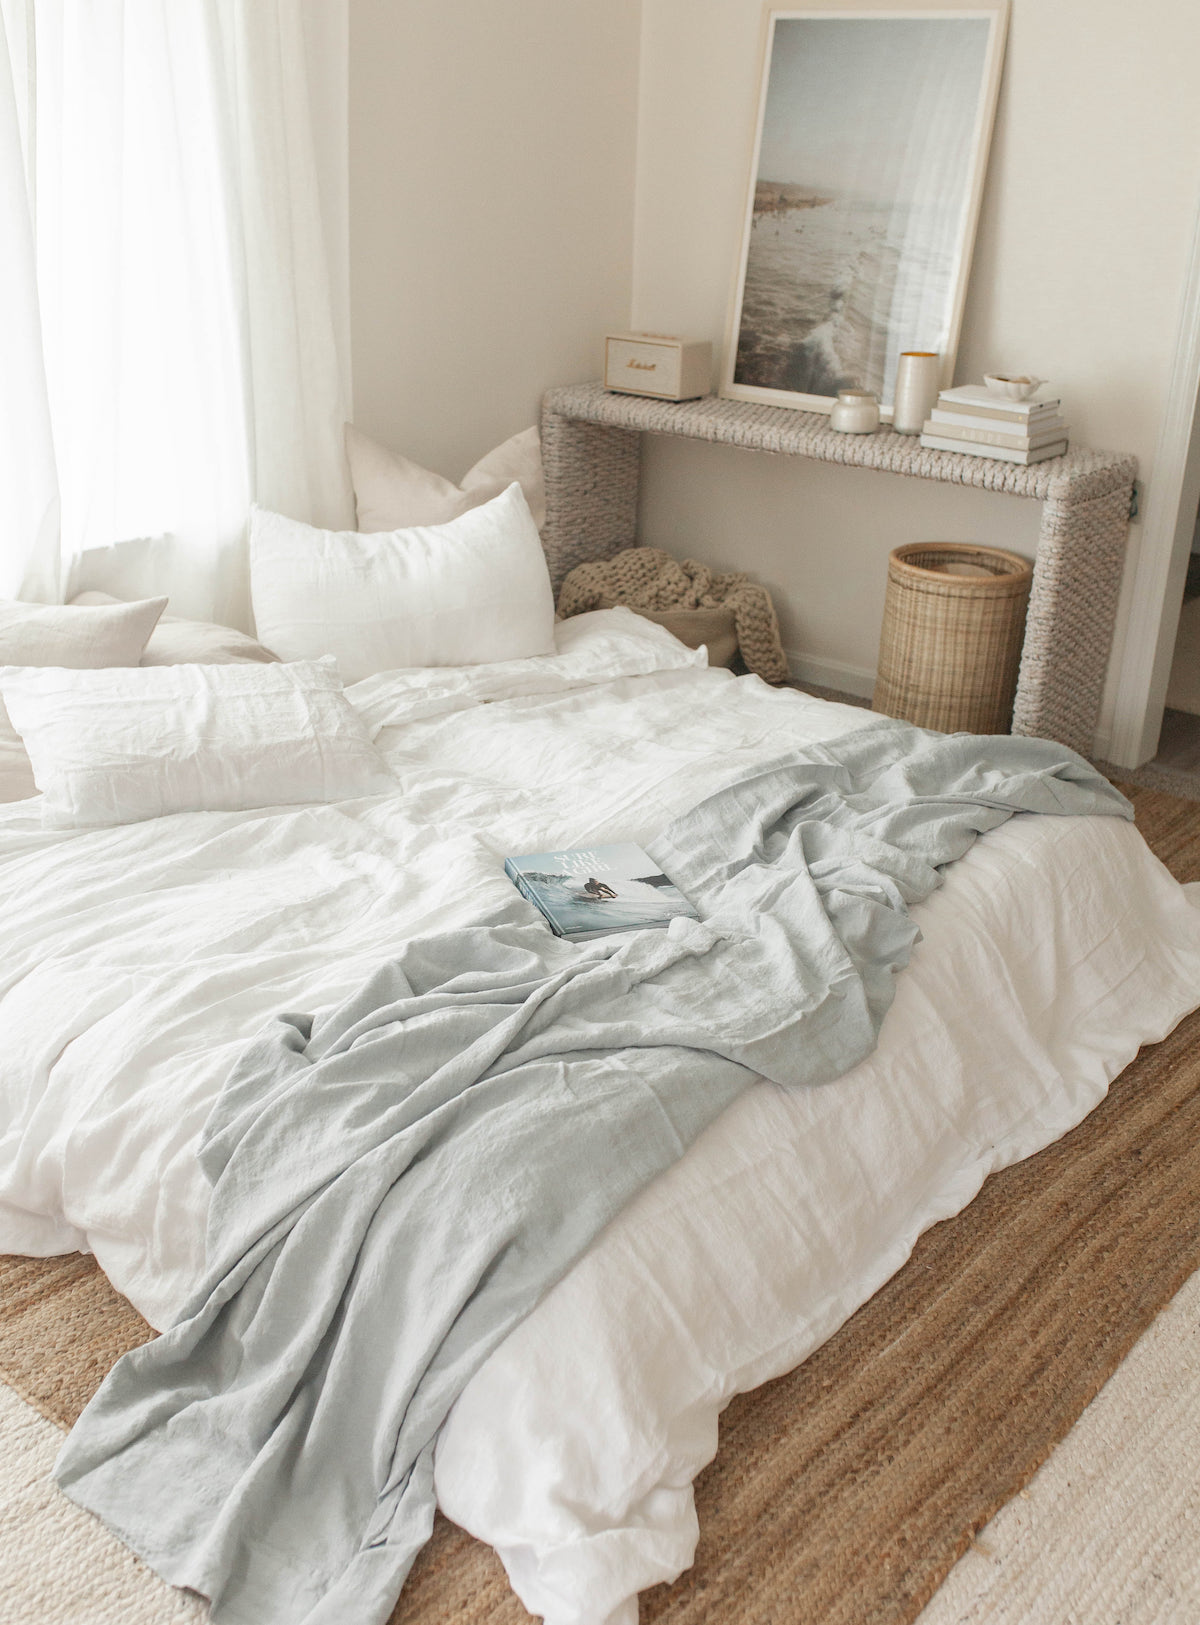 Bedroom with white bedspread, wicker furniture, and light neutral palette